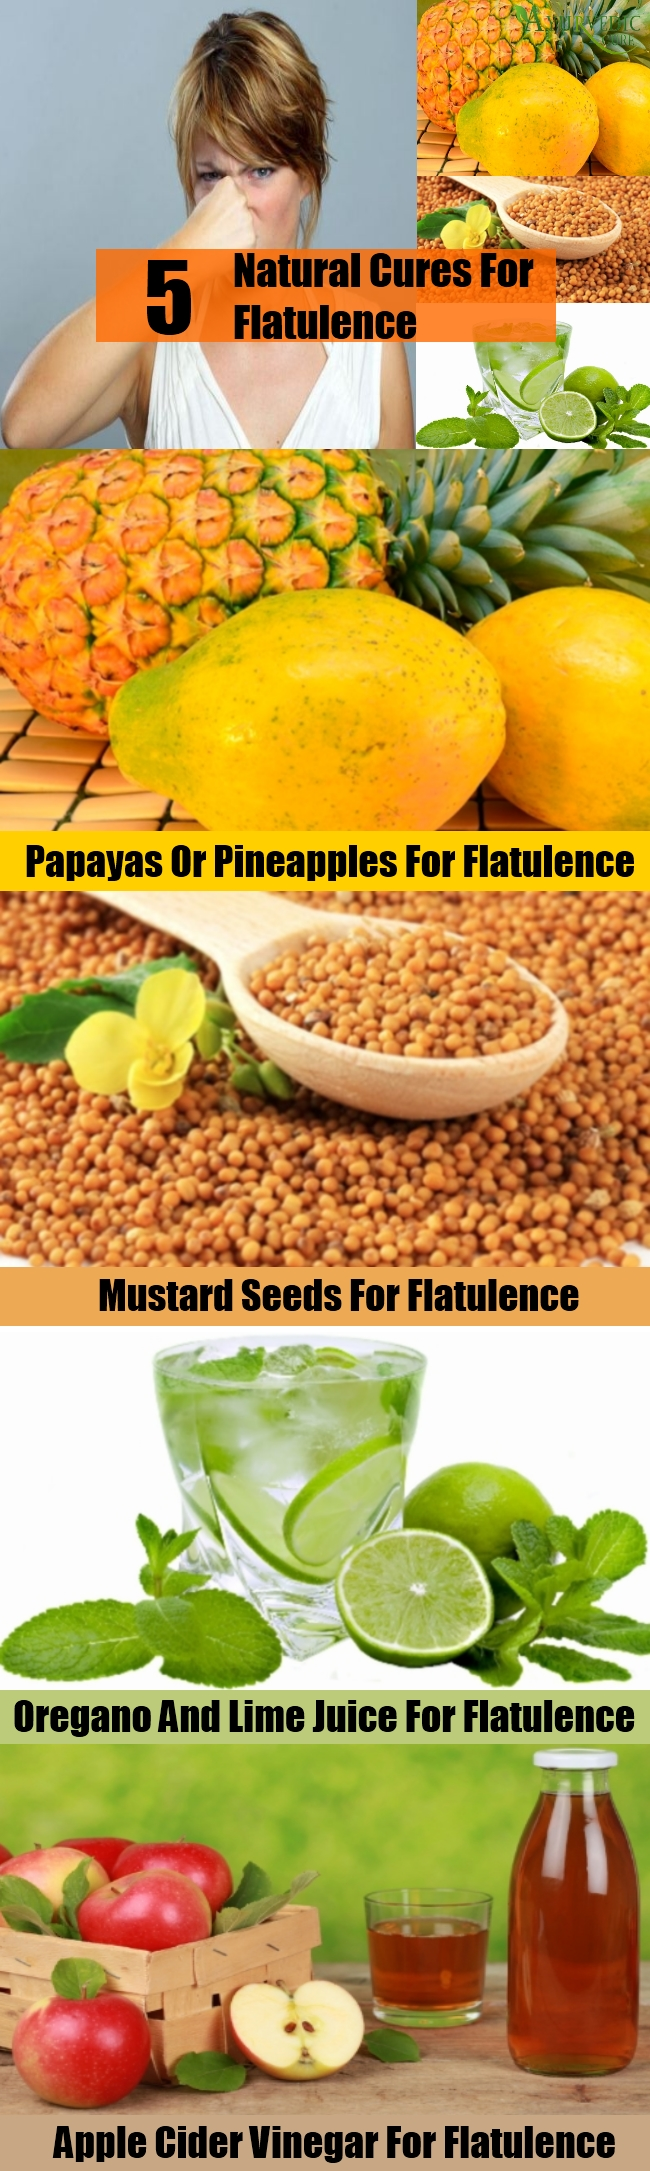 Easy Natural Cures For Flatulence